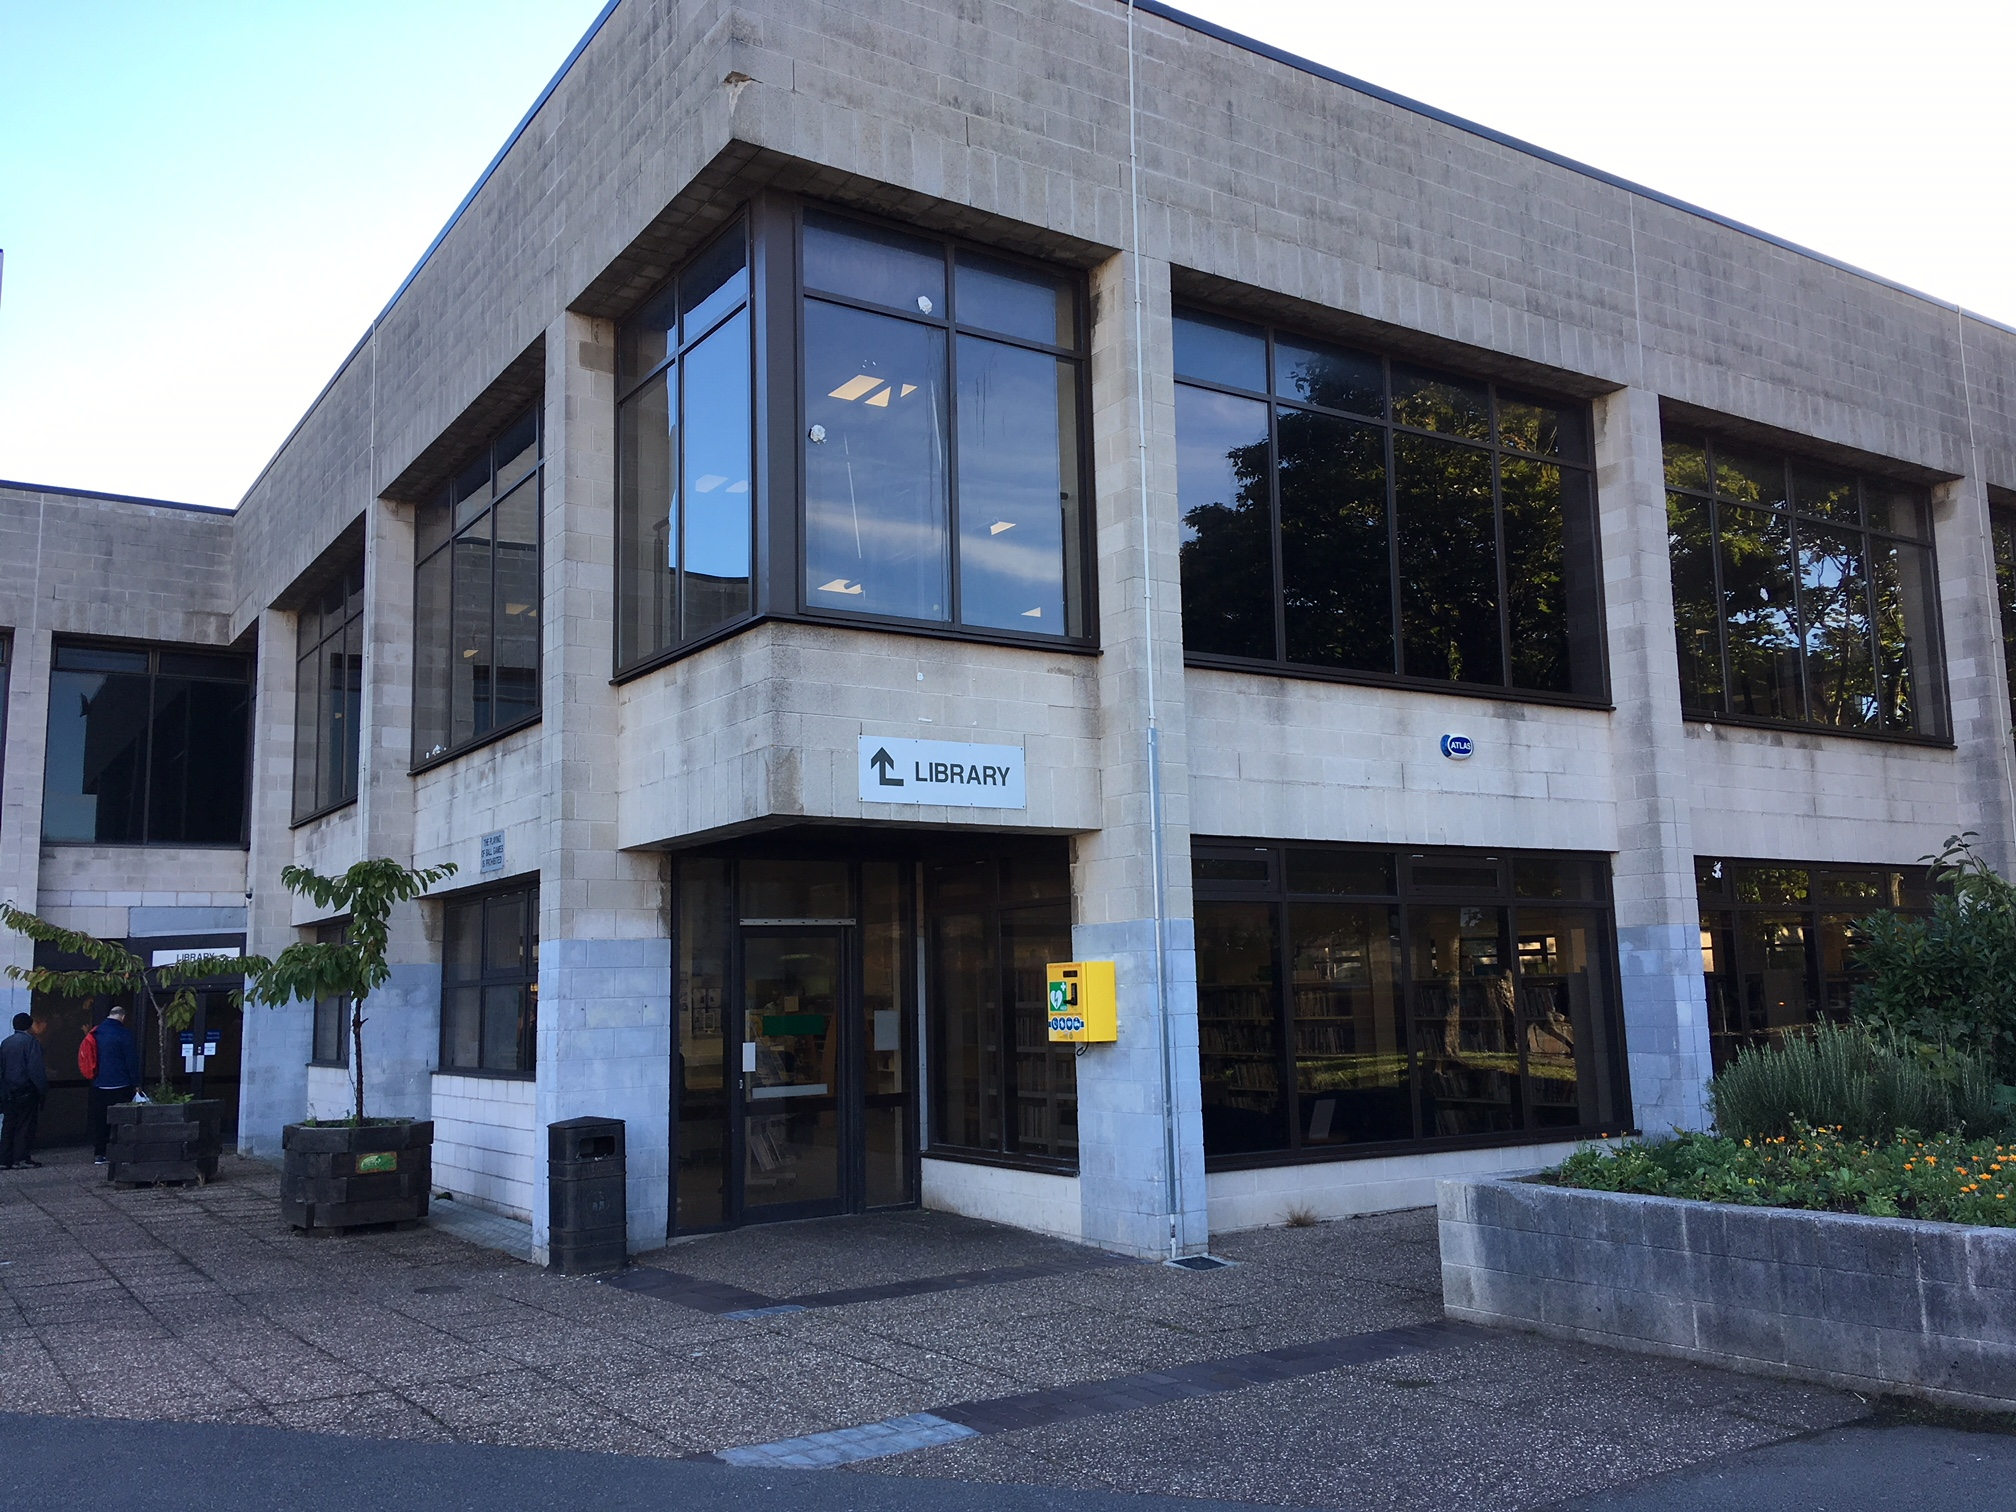 West Kirby Library